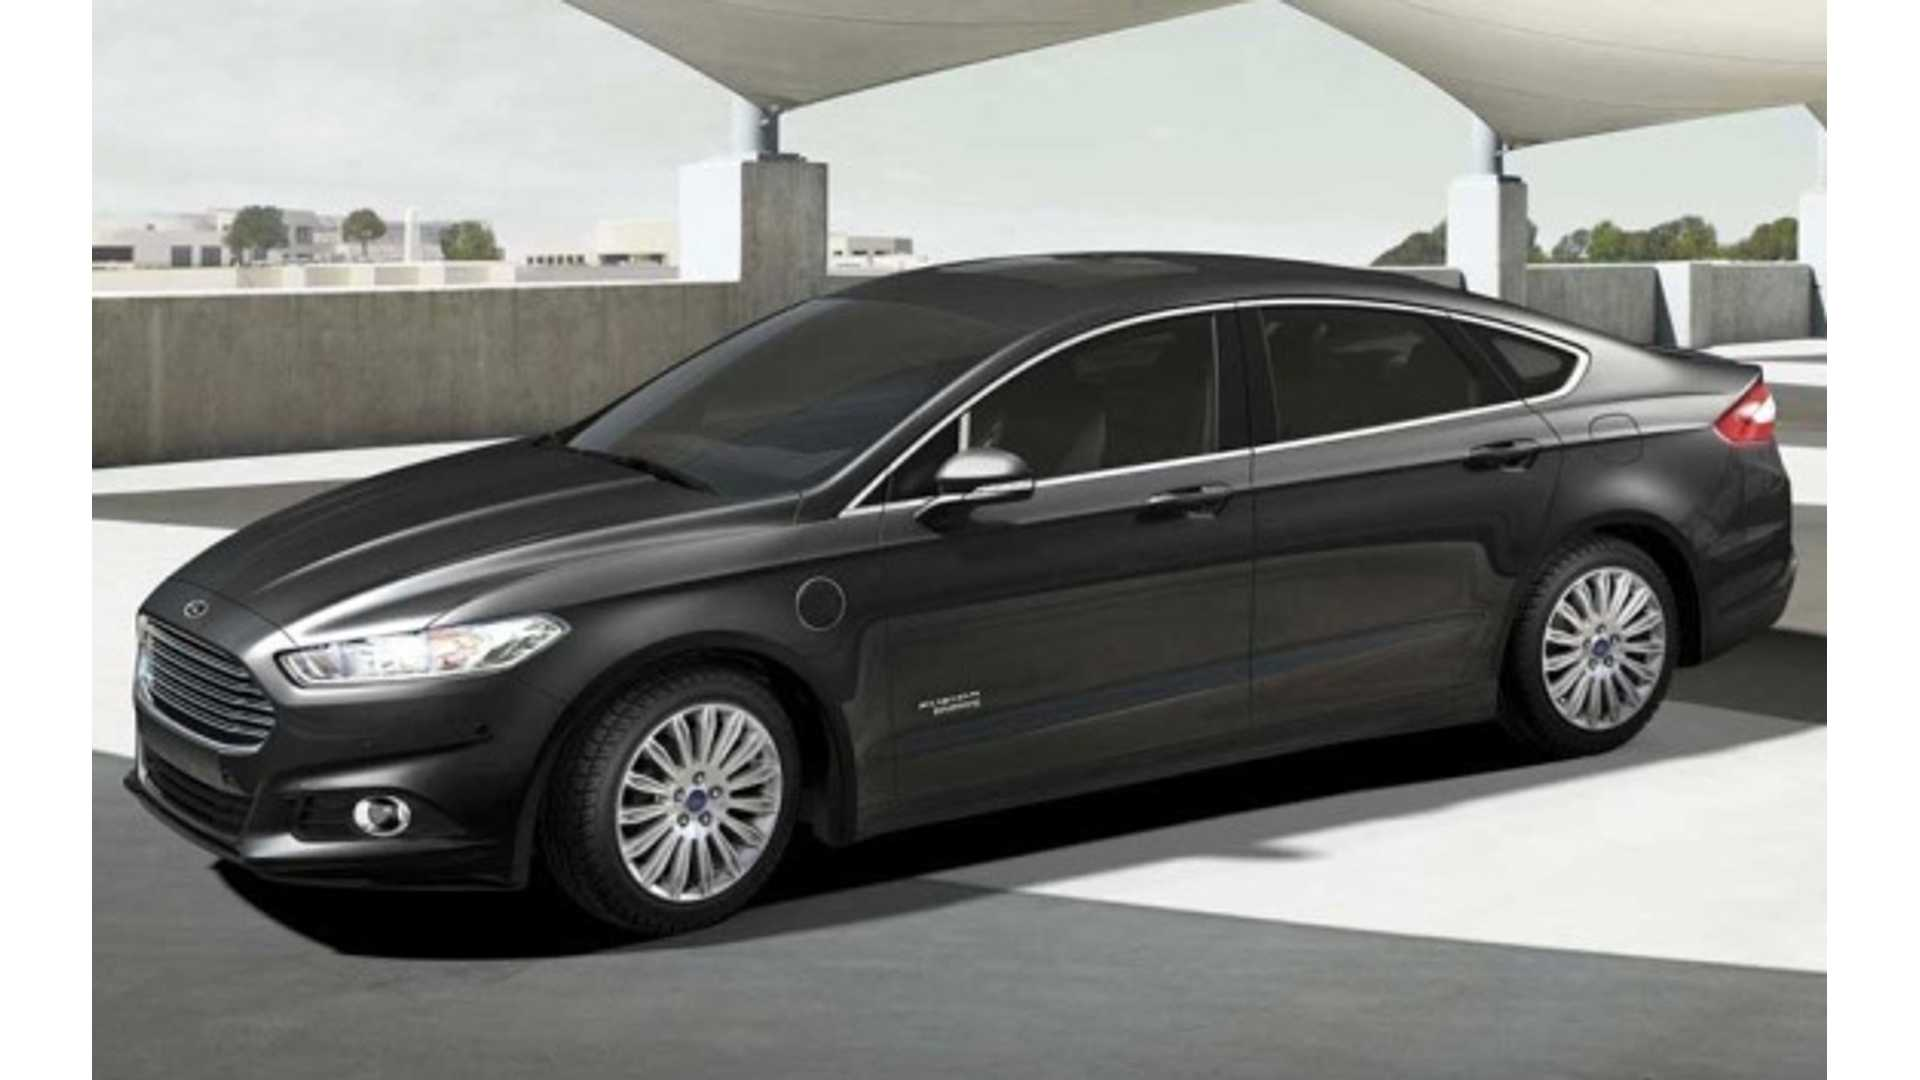 You Heard It Here First Ford Fusion Energi Quietly Rated At 21 Miles Electric 43 Mpg Extended